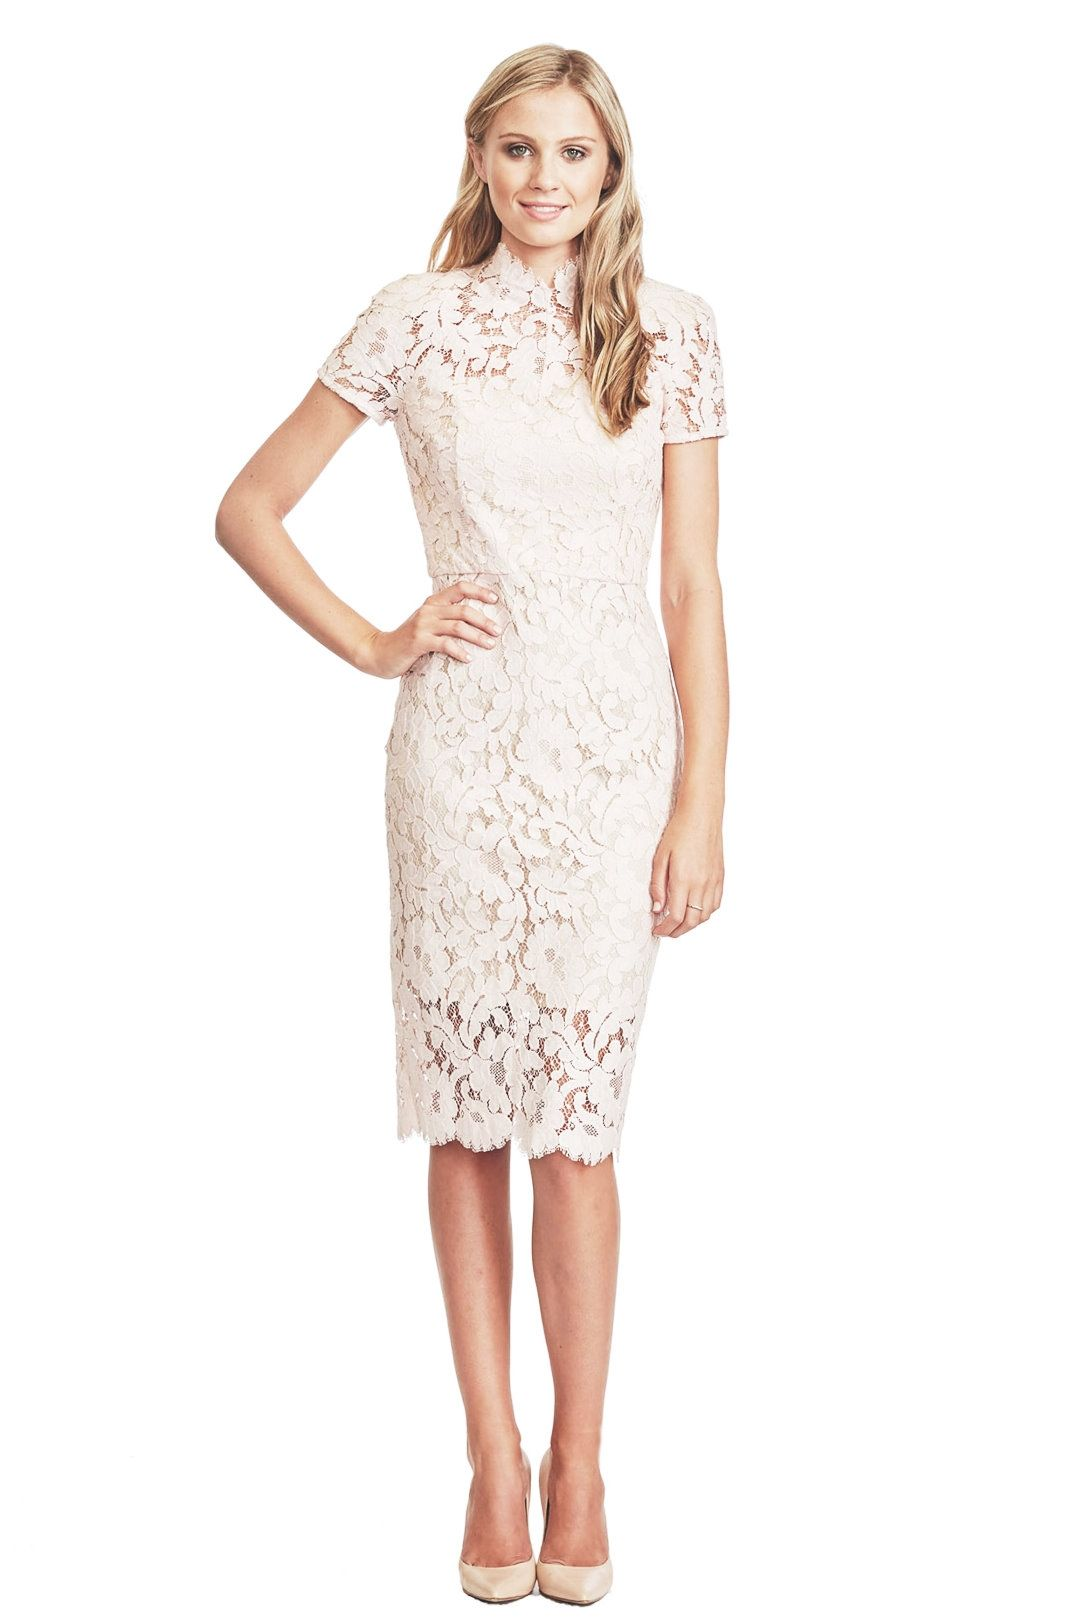 Lover - Midi Warrior Lace Dress - Rose - Front